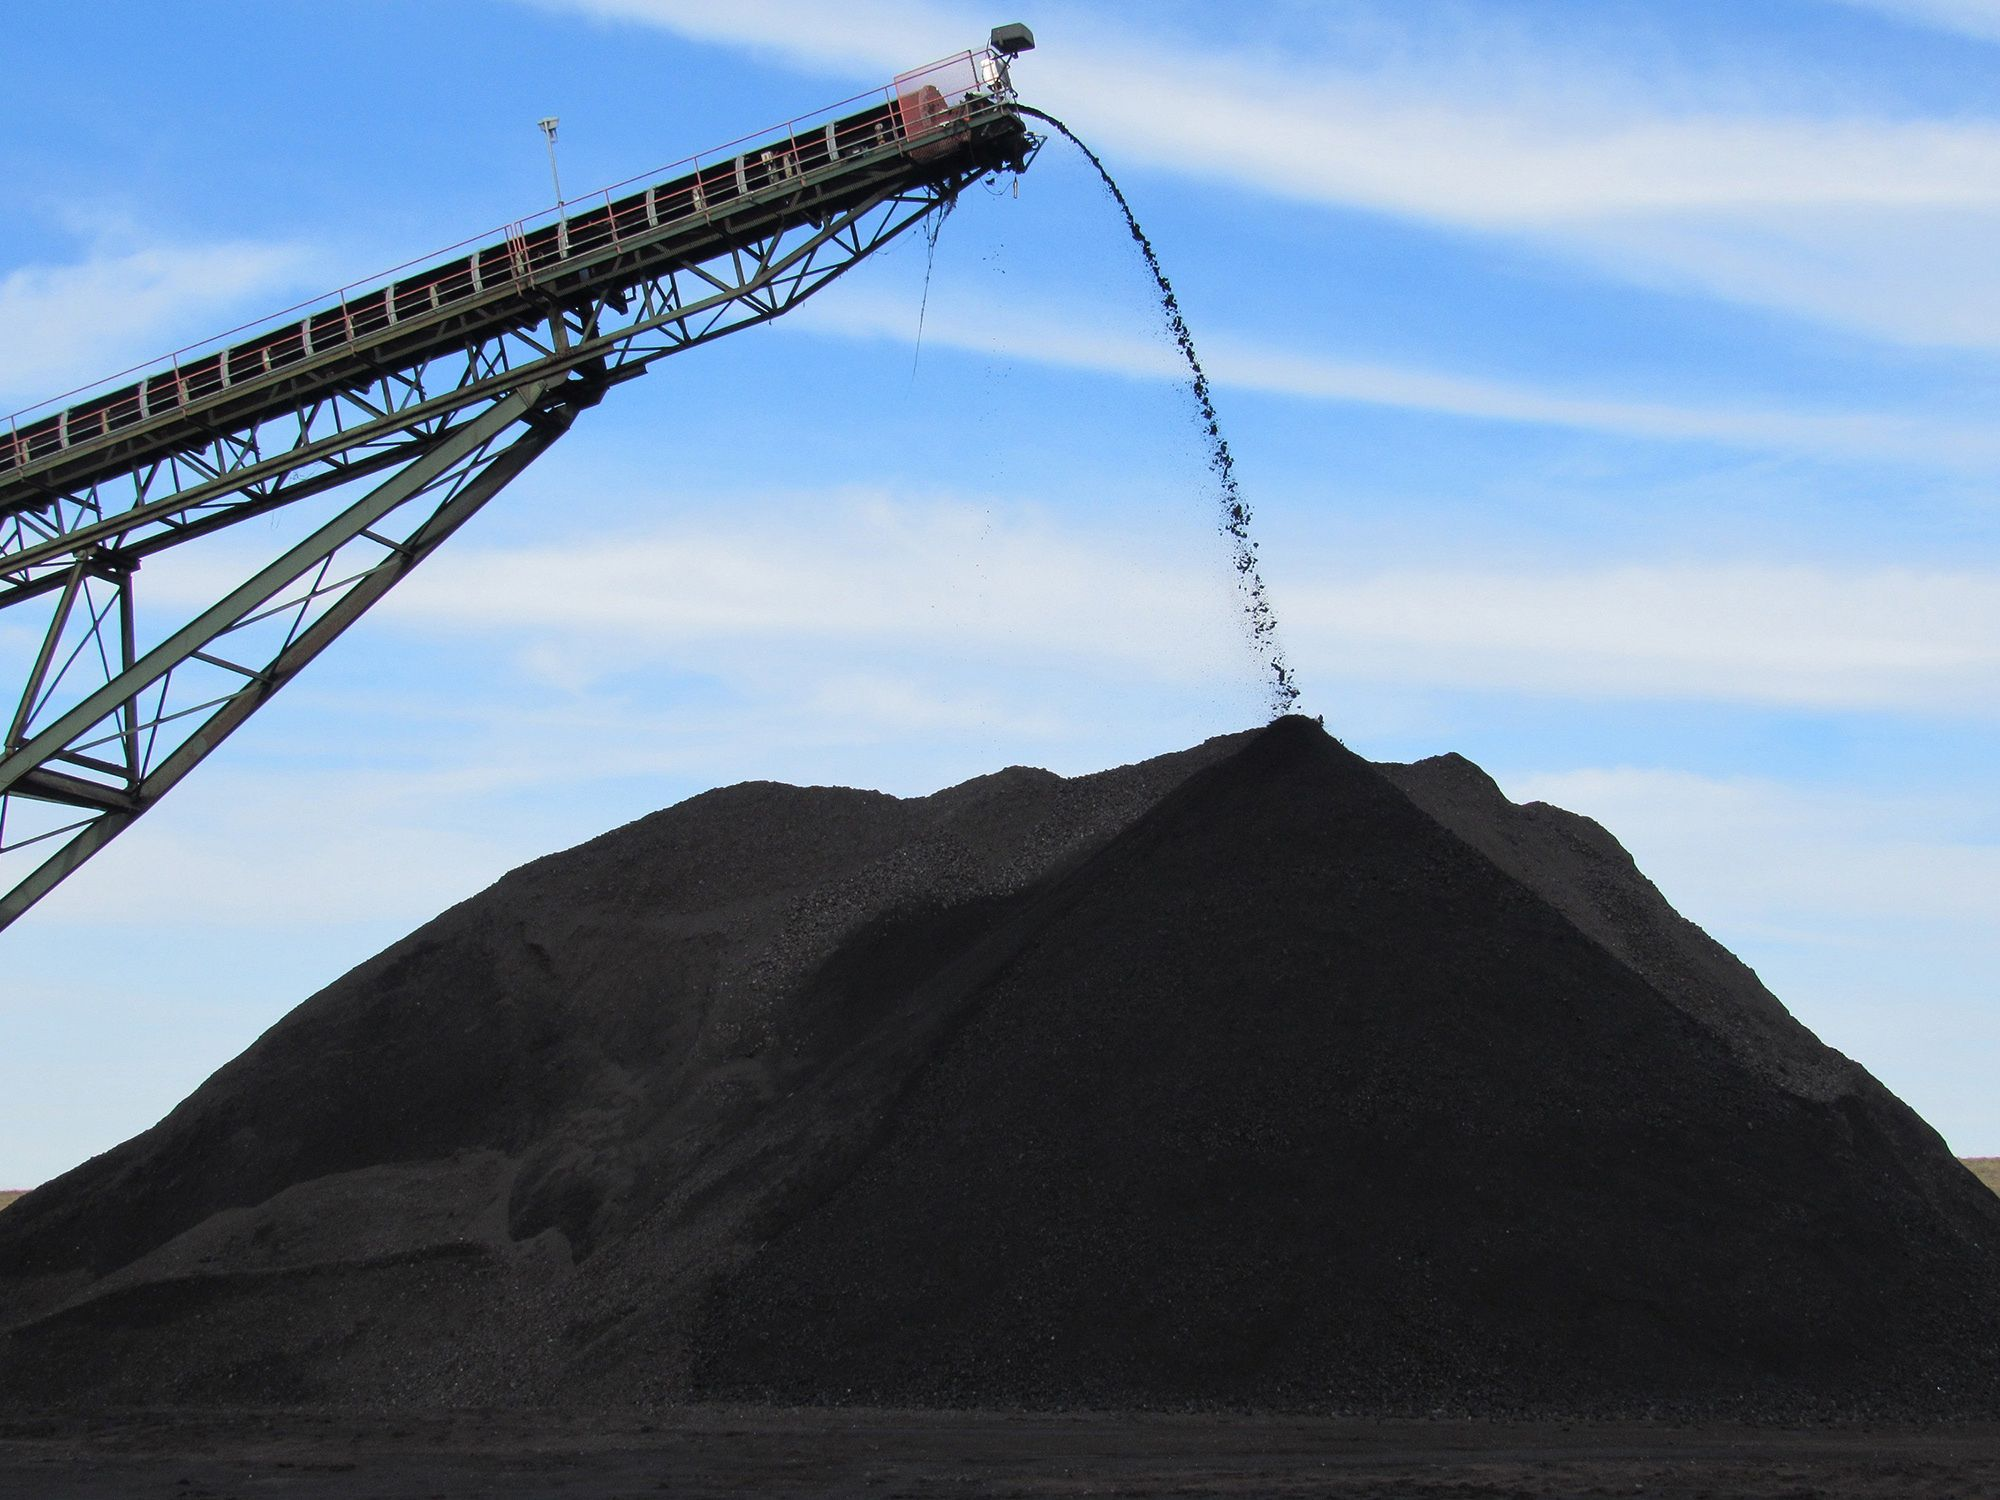 Coal from an underground mine in Muhlenberg County, Kentucky, pours off the end of a conveyor onto a pile used to load trucks